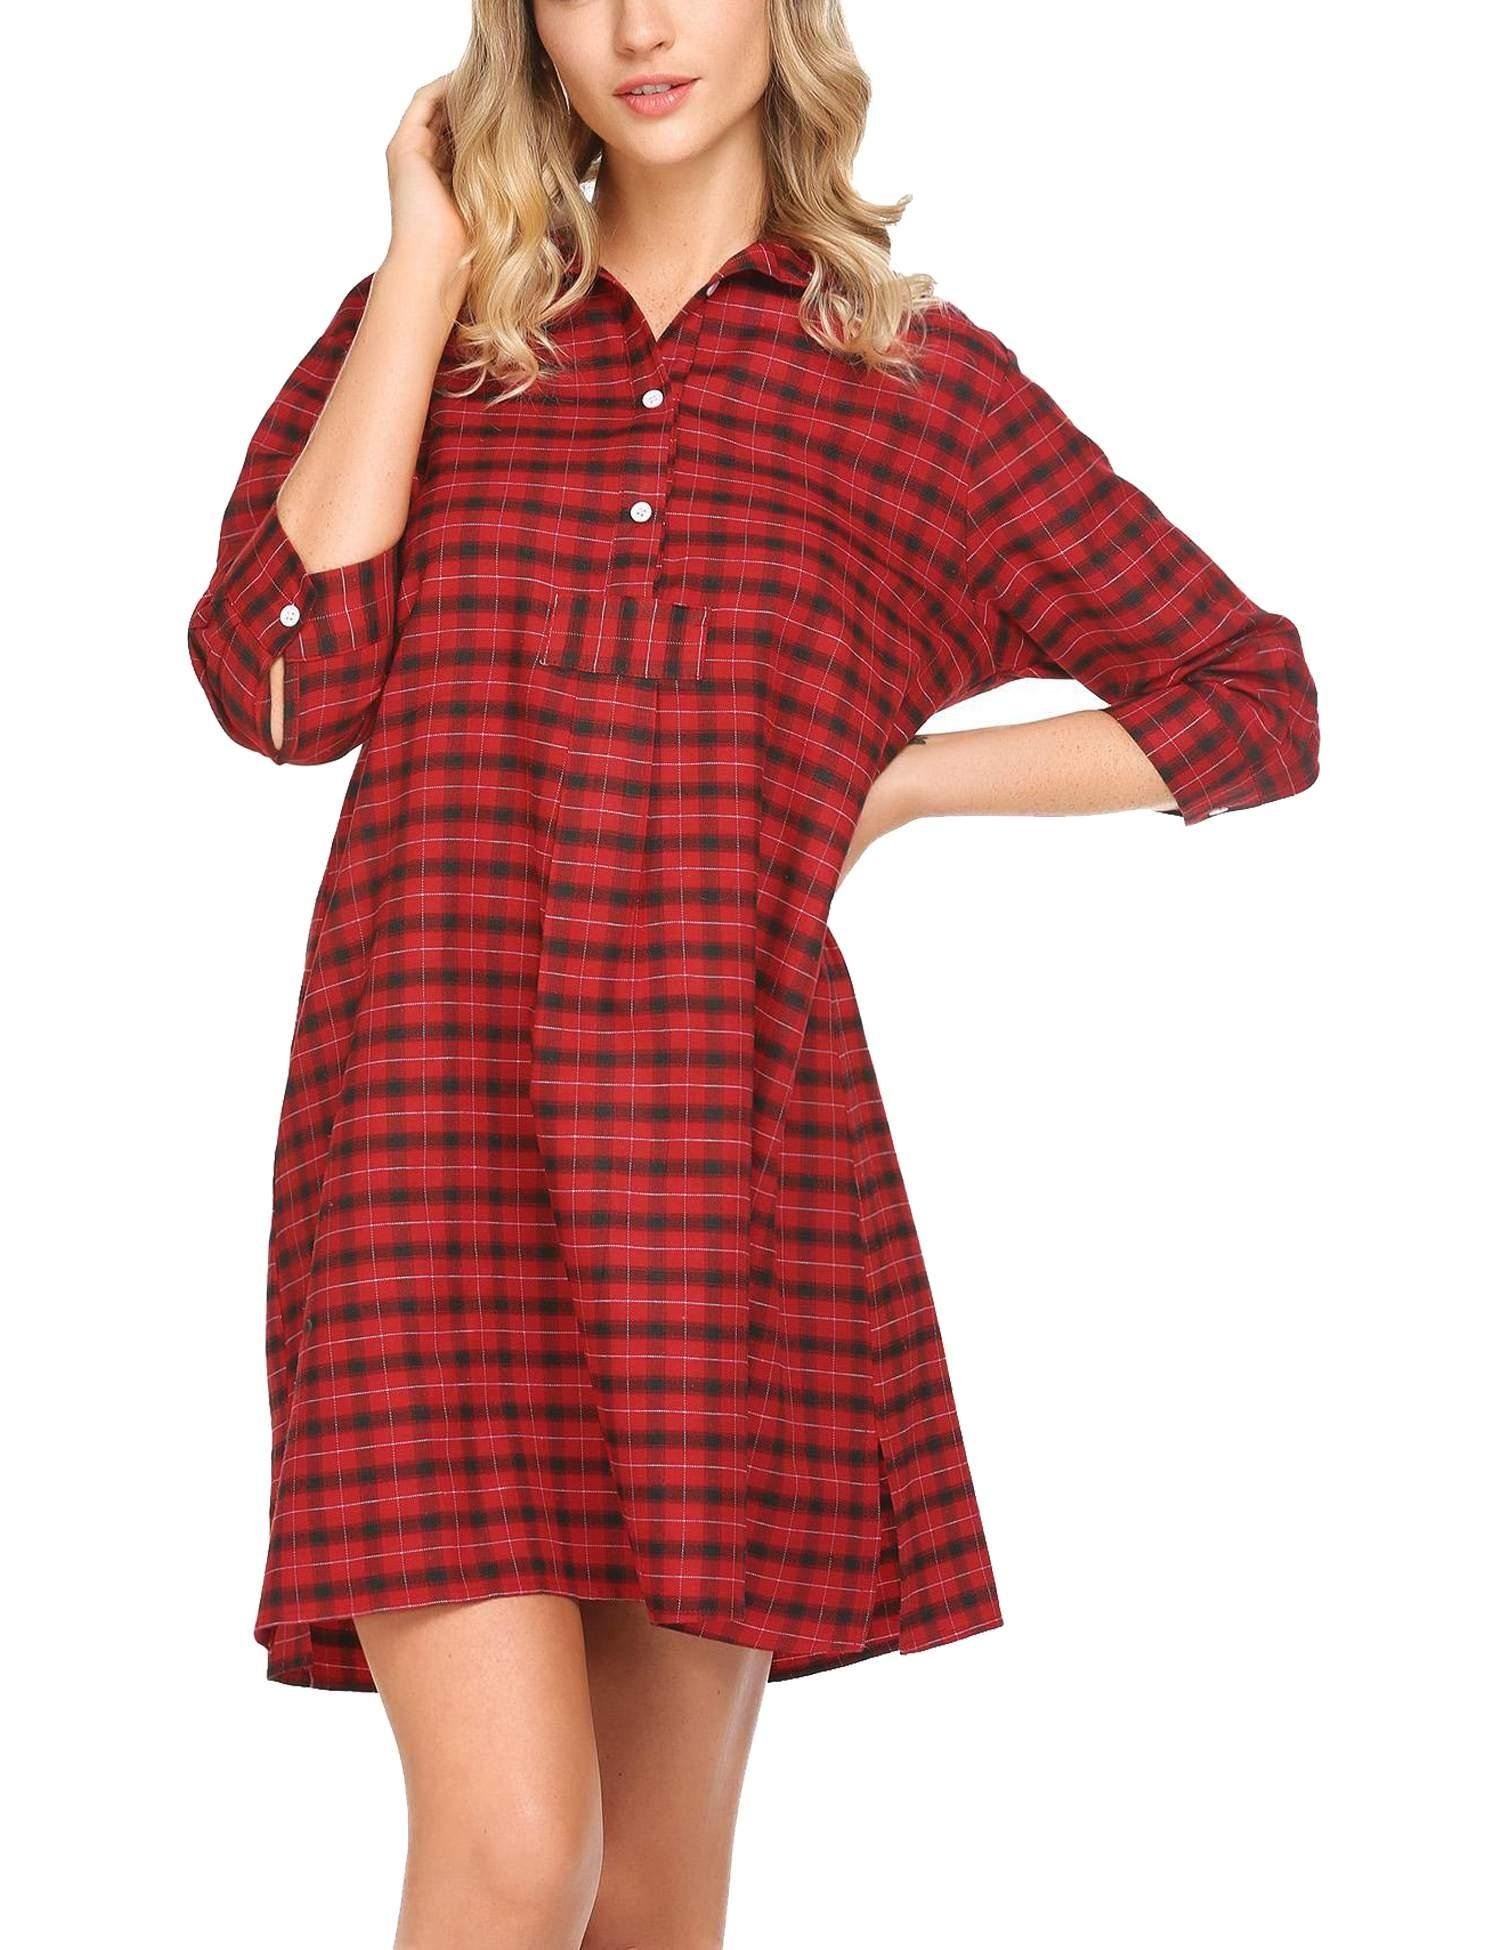 Baguet Women Casual Stand Collar 3/4 Sleeve Plaid Button Split Hem Sleepwear Nightshirt Dress Loose Style